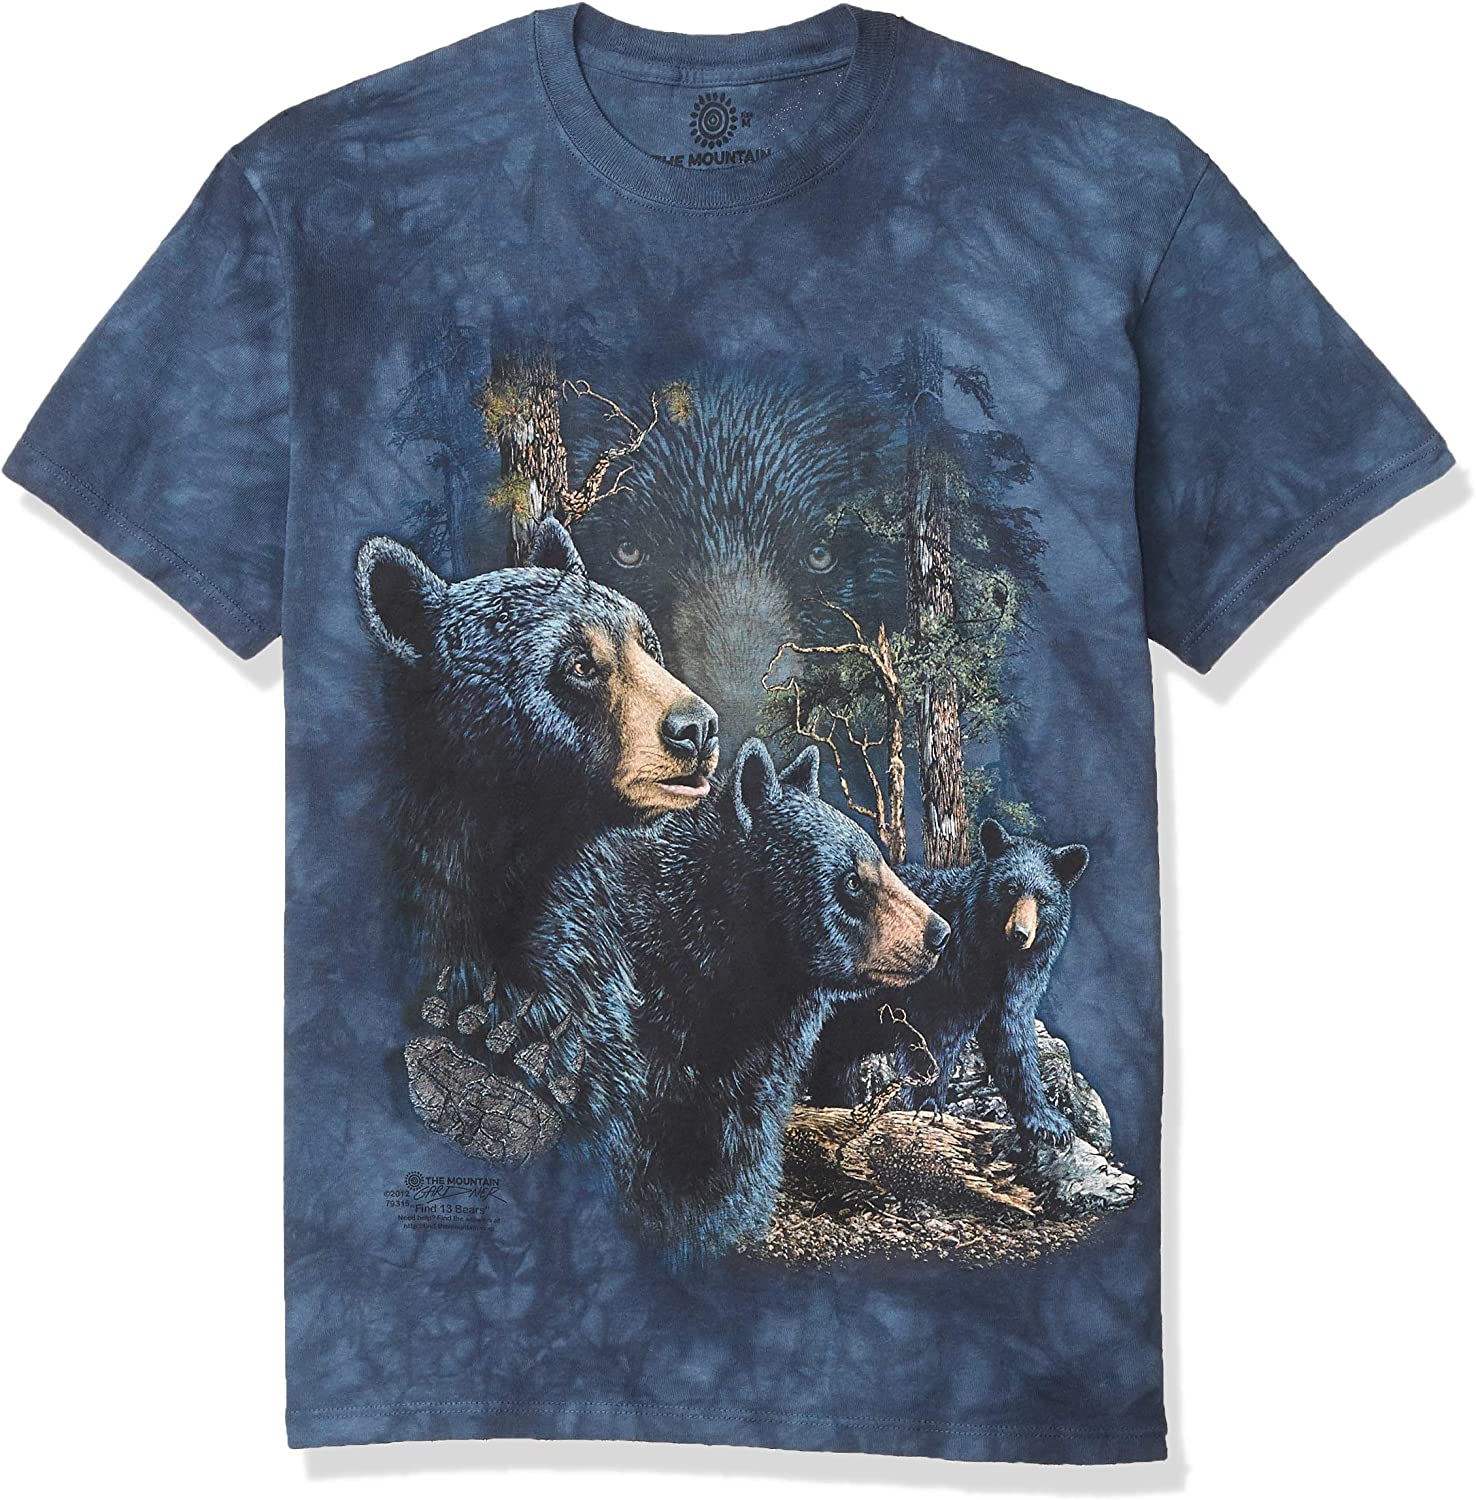 The Mountain 100/% Cotton Kid/'s T-Shirt Find 13 Black Bears NWT